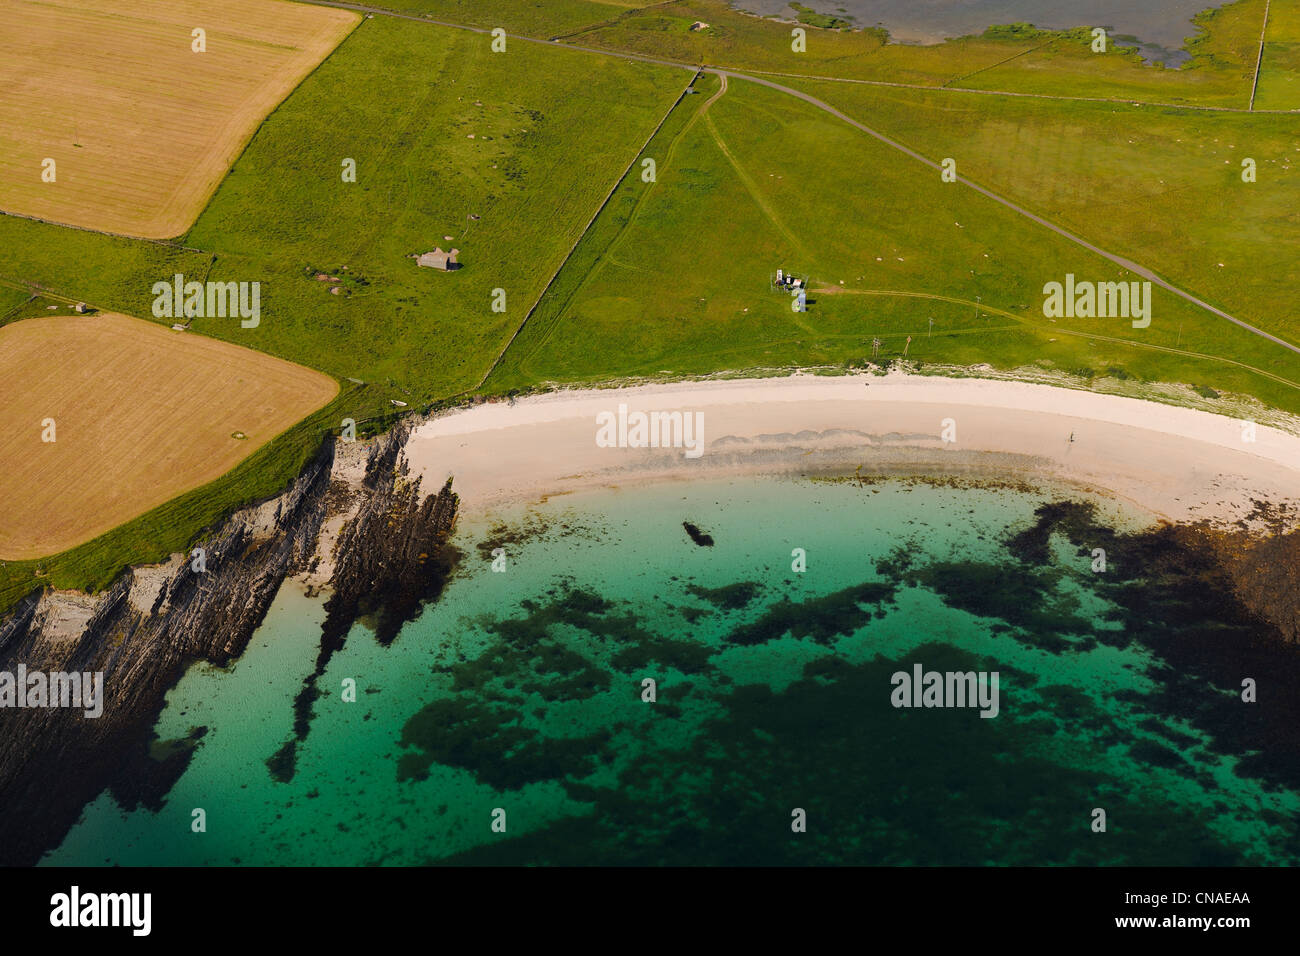 United Kingdom, Scotland, Orkney Islands, Papa Westray Island, beach and clear sea (aerial view) - Stock Image